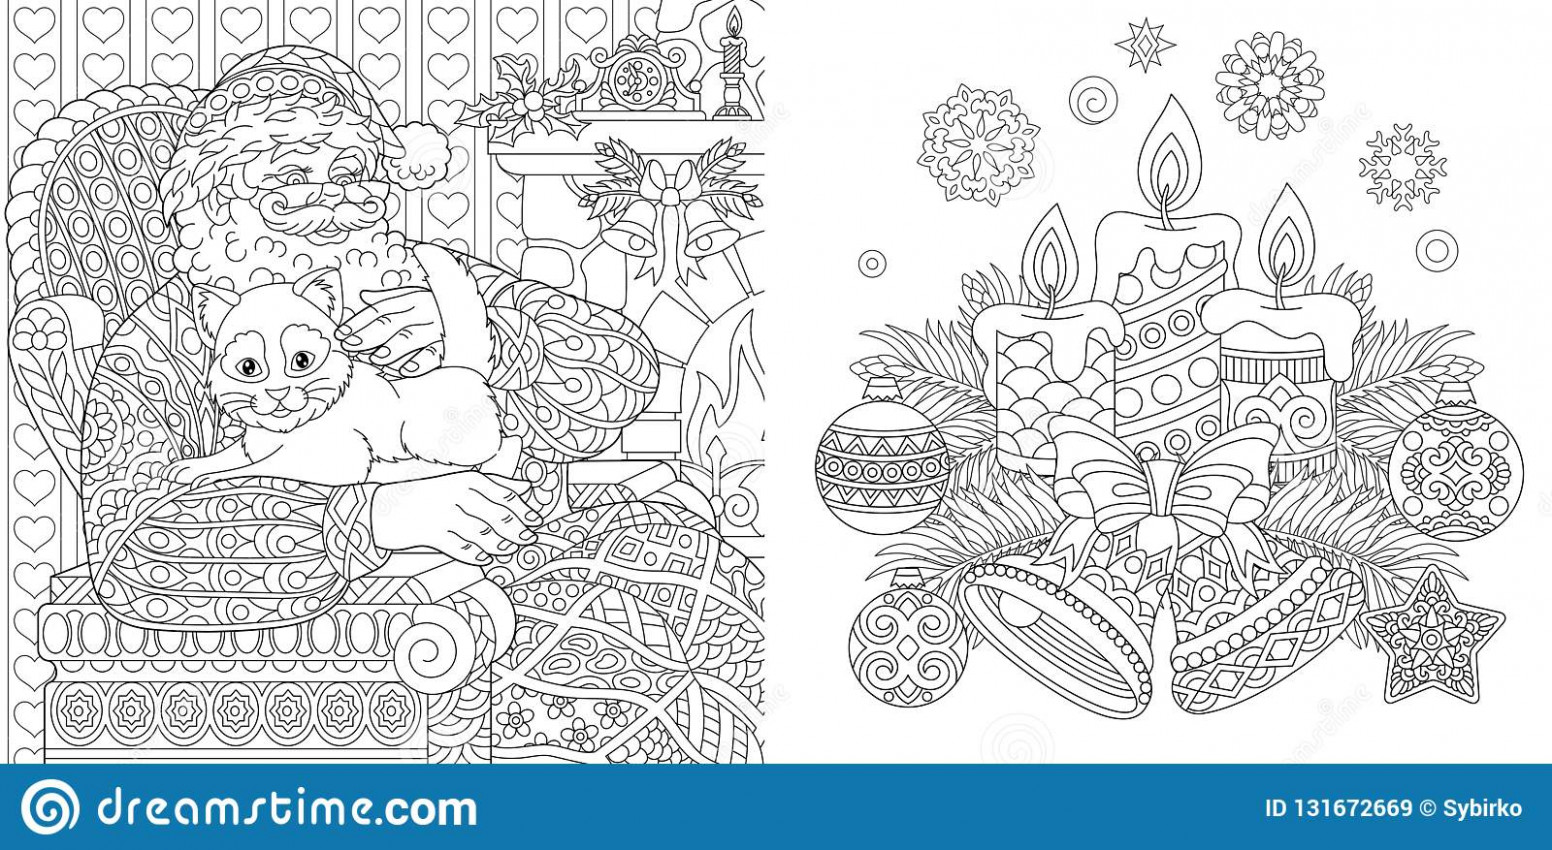 Christmas Colouring Pages. Coloring Book For Adults. Santa Claus ...